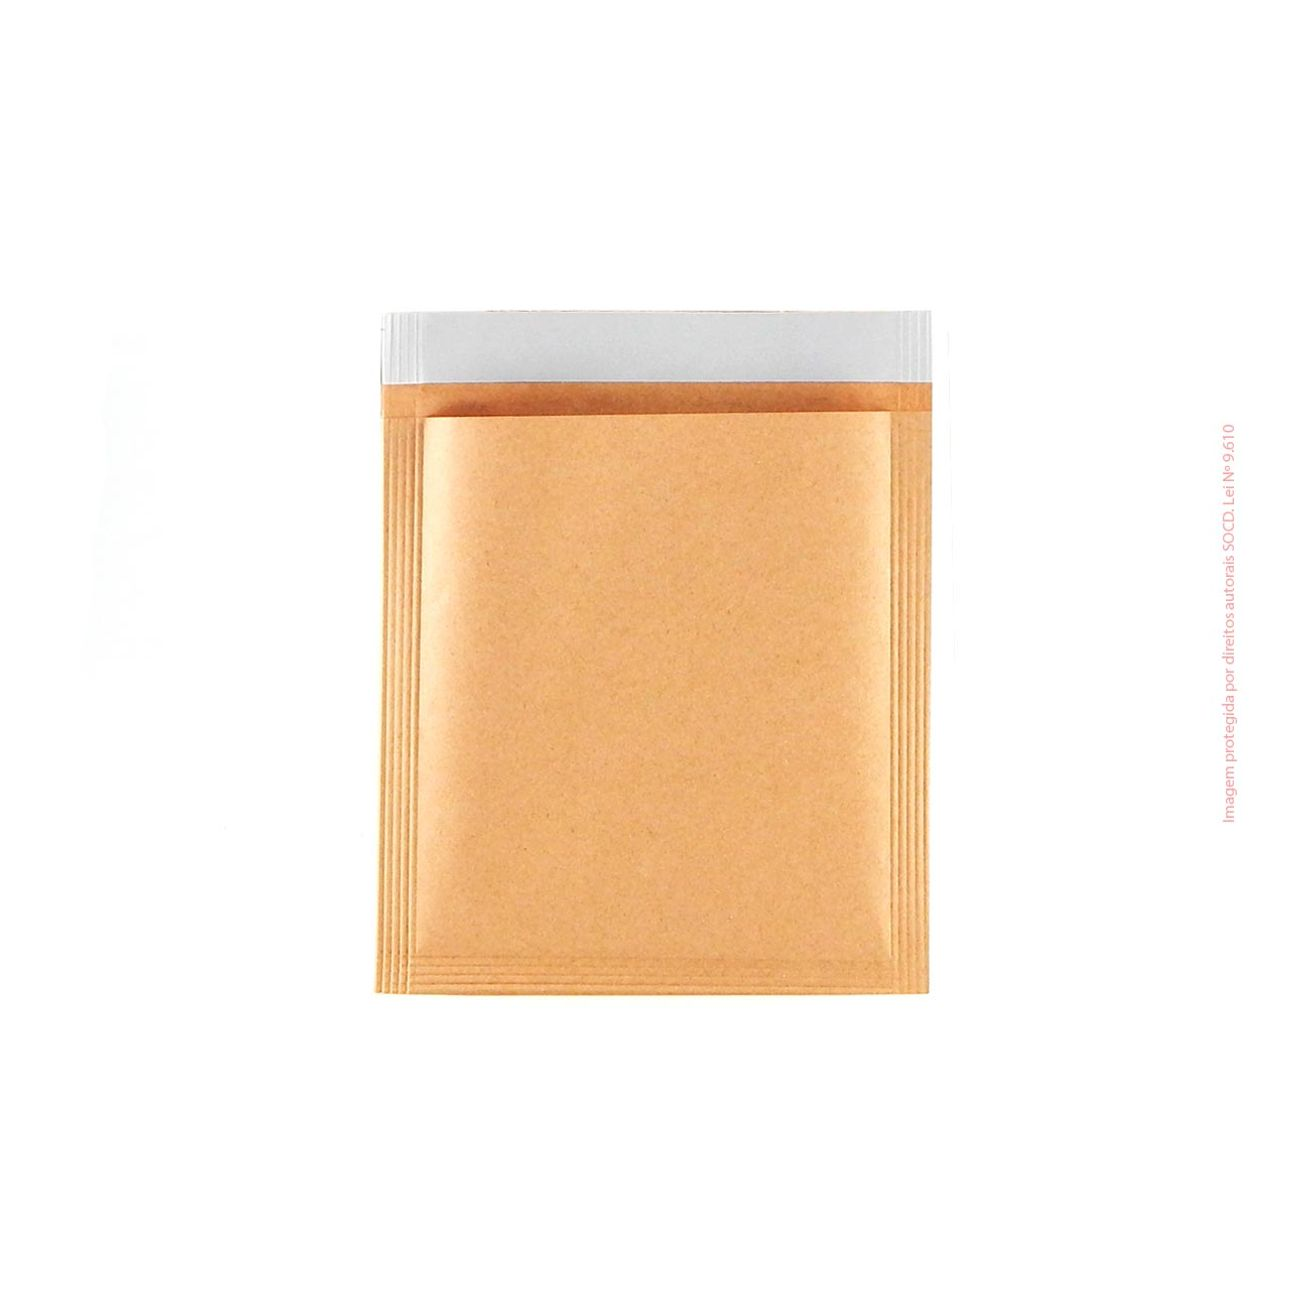 705f12961 Envelope Bolha para BOX CD 16 x 18 cm - 5 Unidades